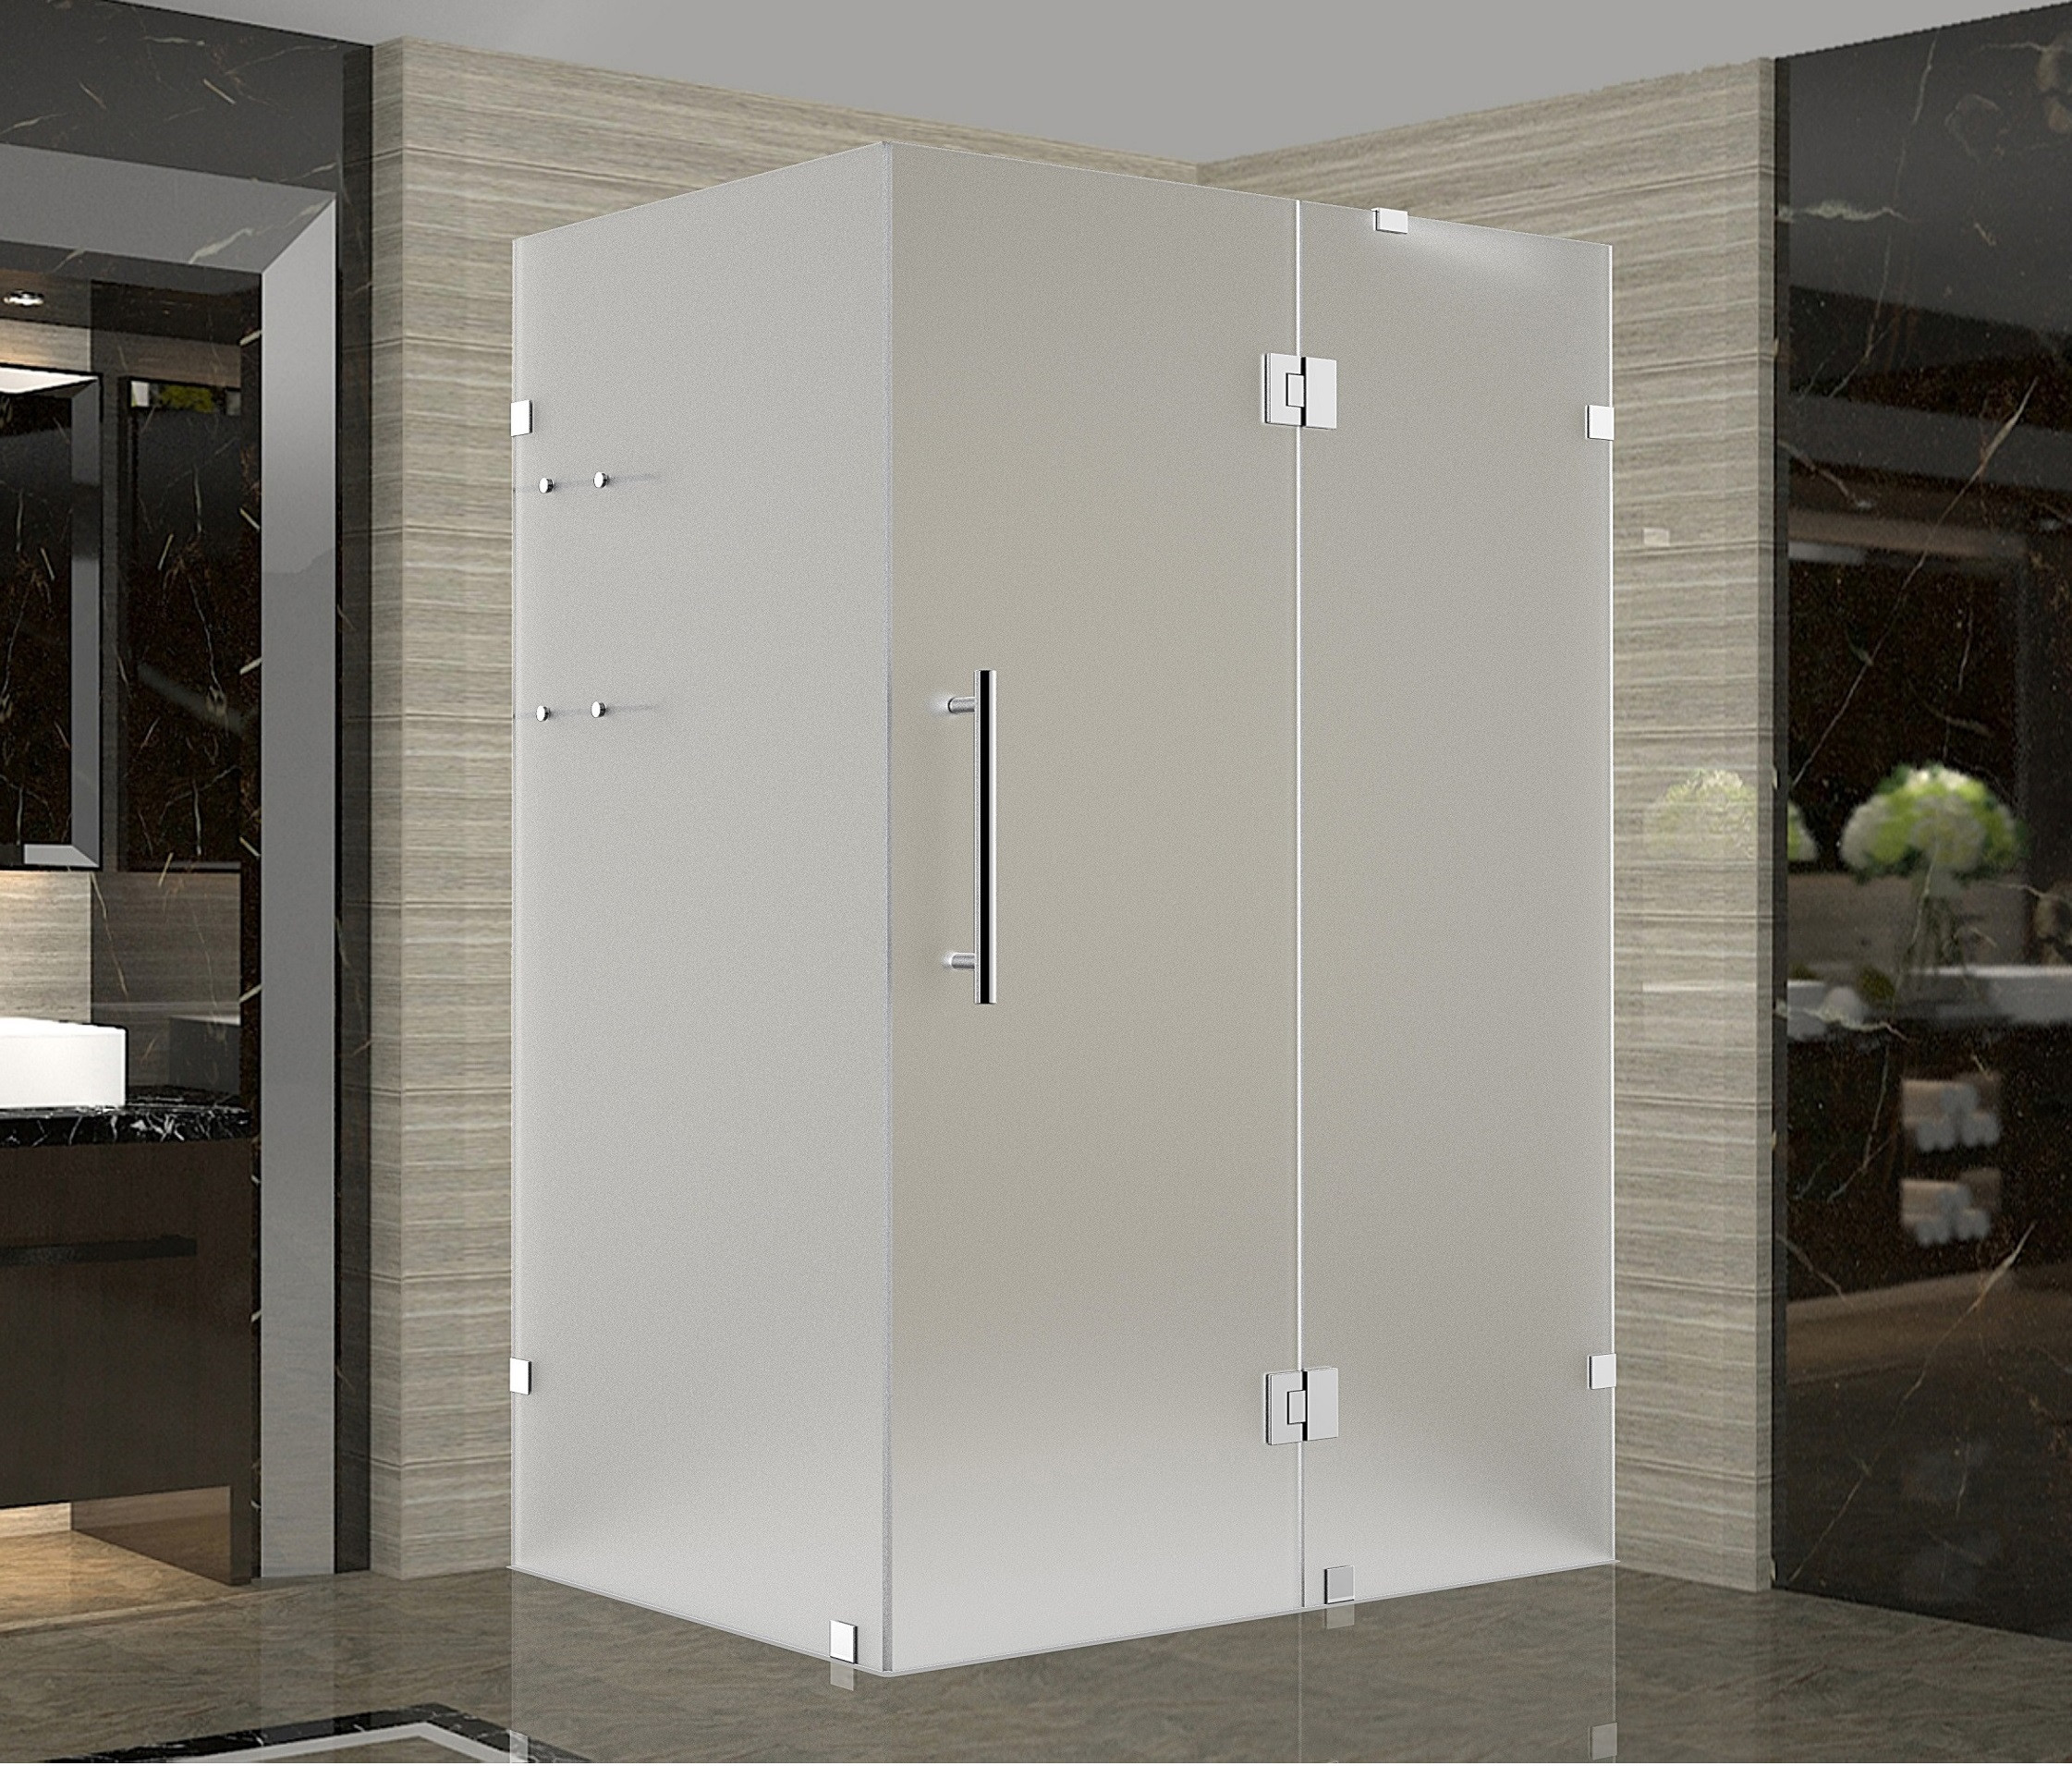 Aston Global SEN992F-CH-4830-10 Chrome Completely Frameless Frosted Shower Enclosure with Shelves